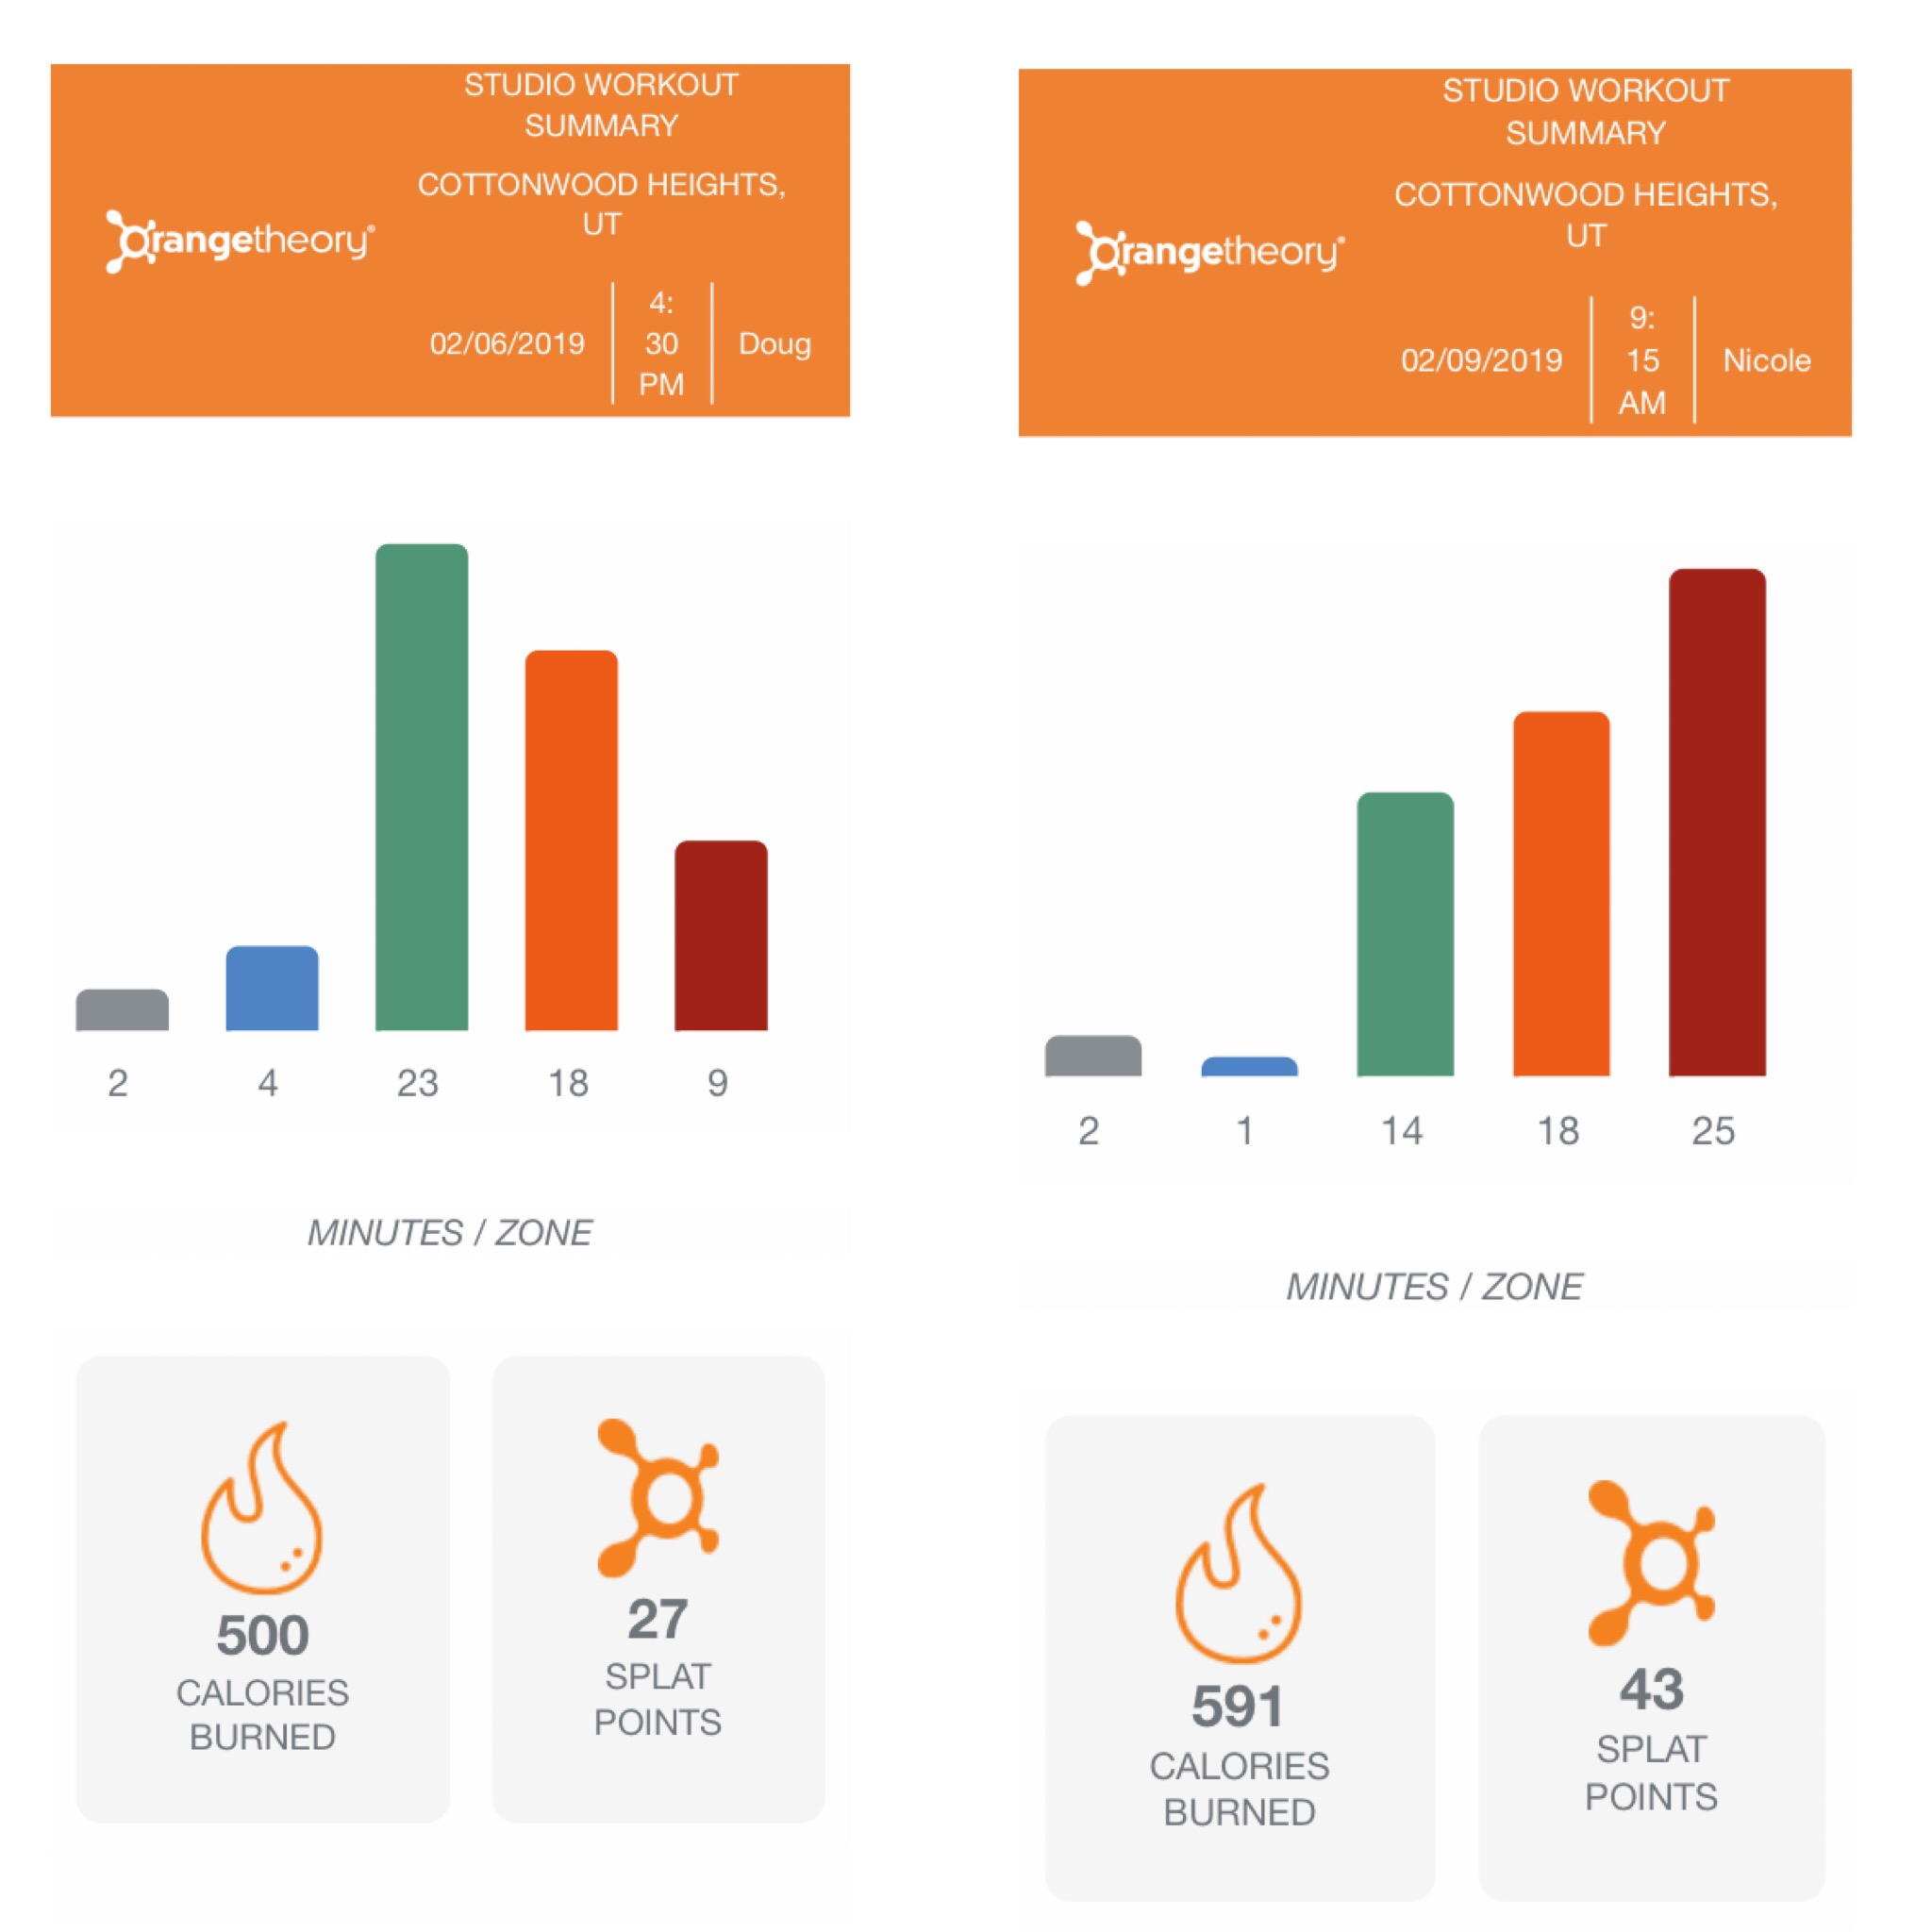 Orangetheory Fitness results